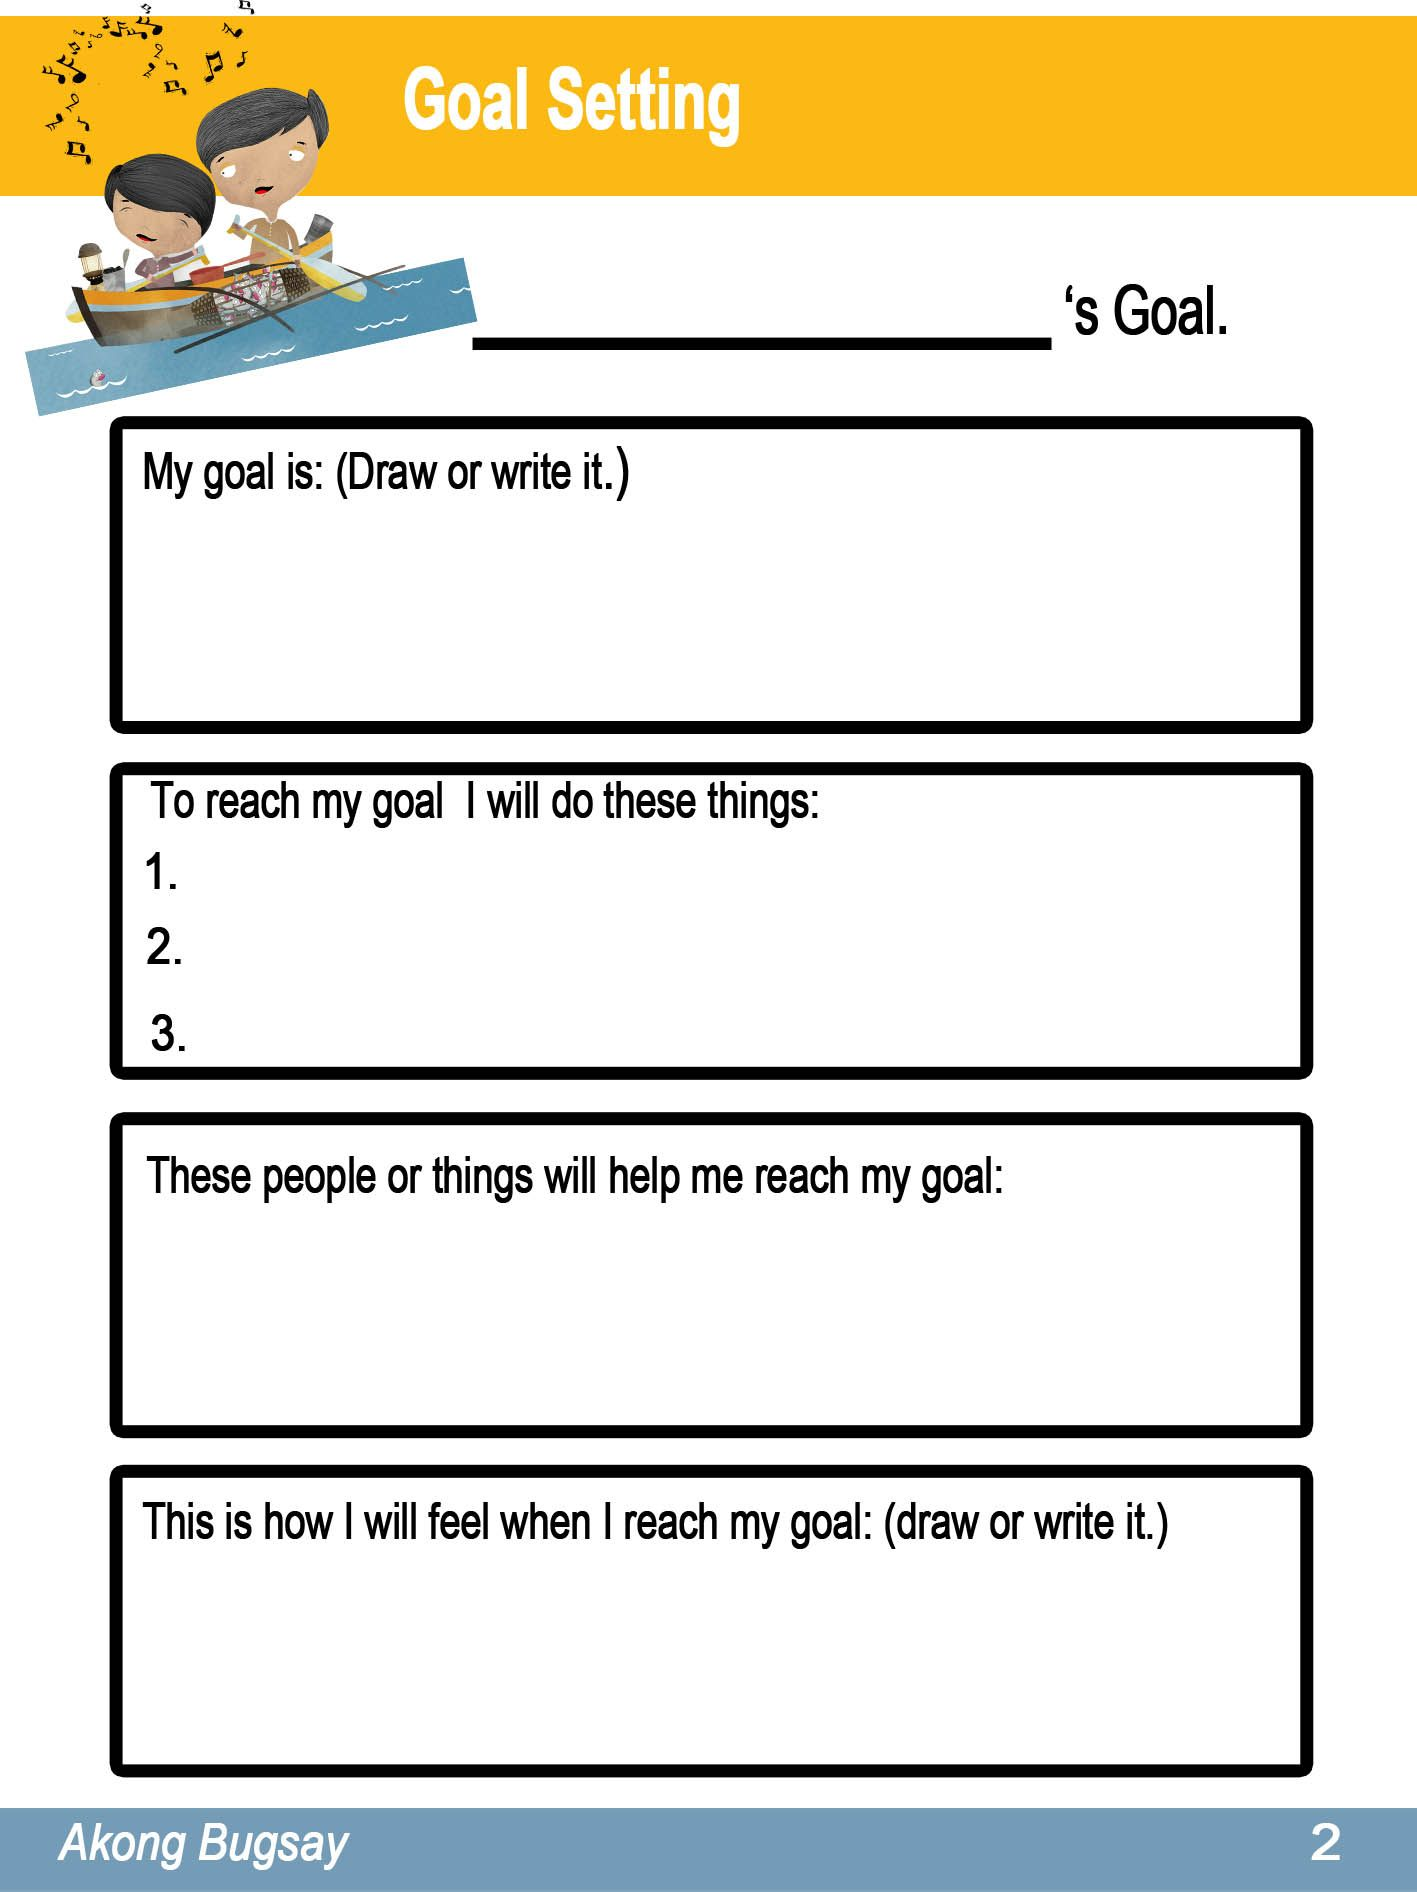 goalsetting copy jpg times pixels school goal settings